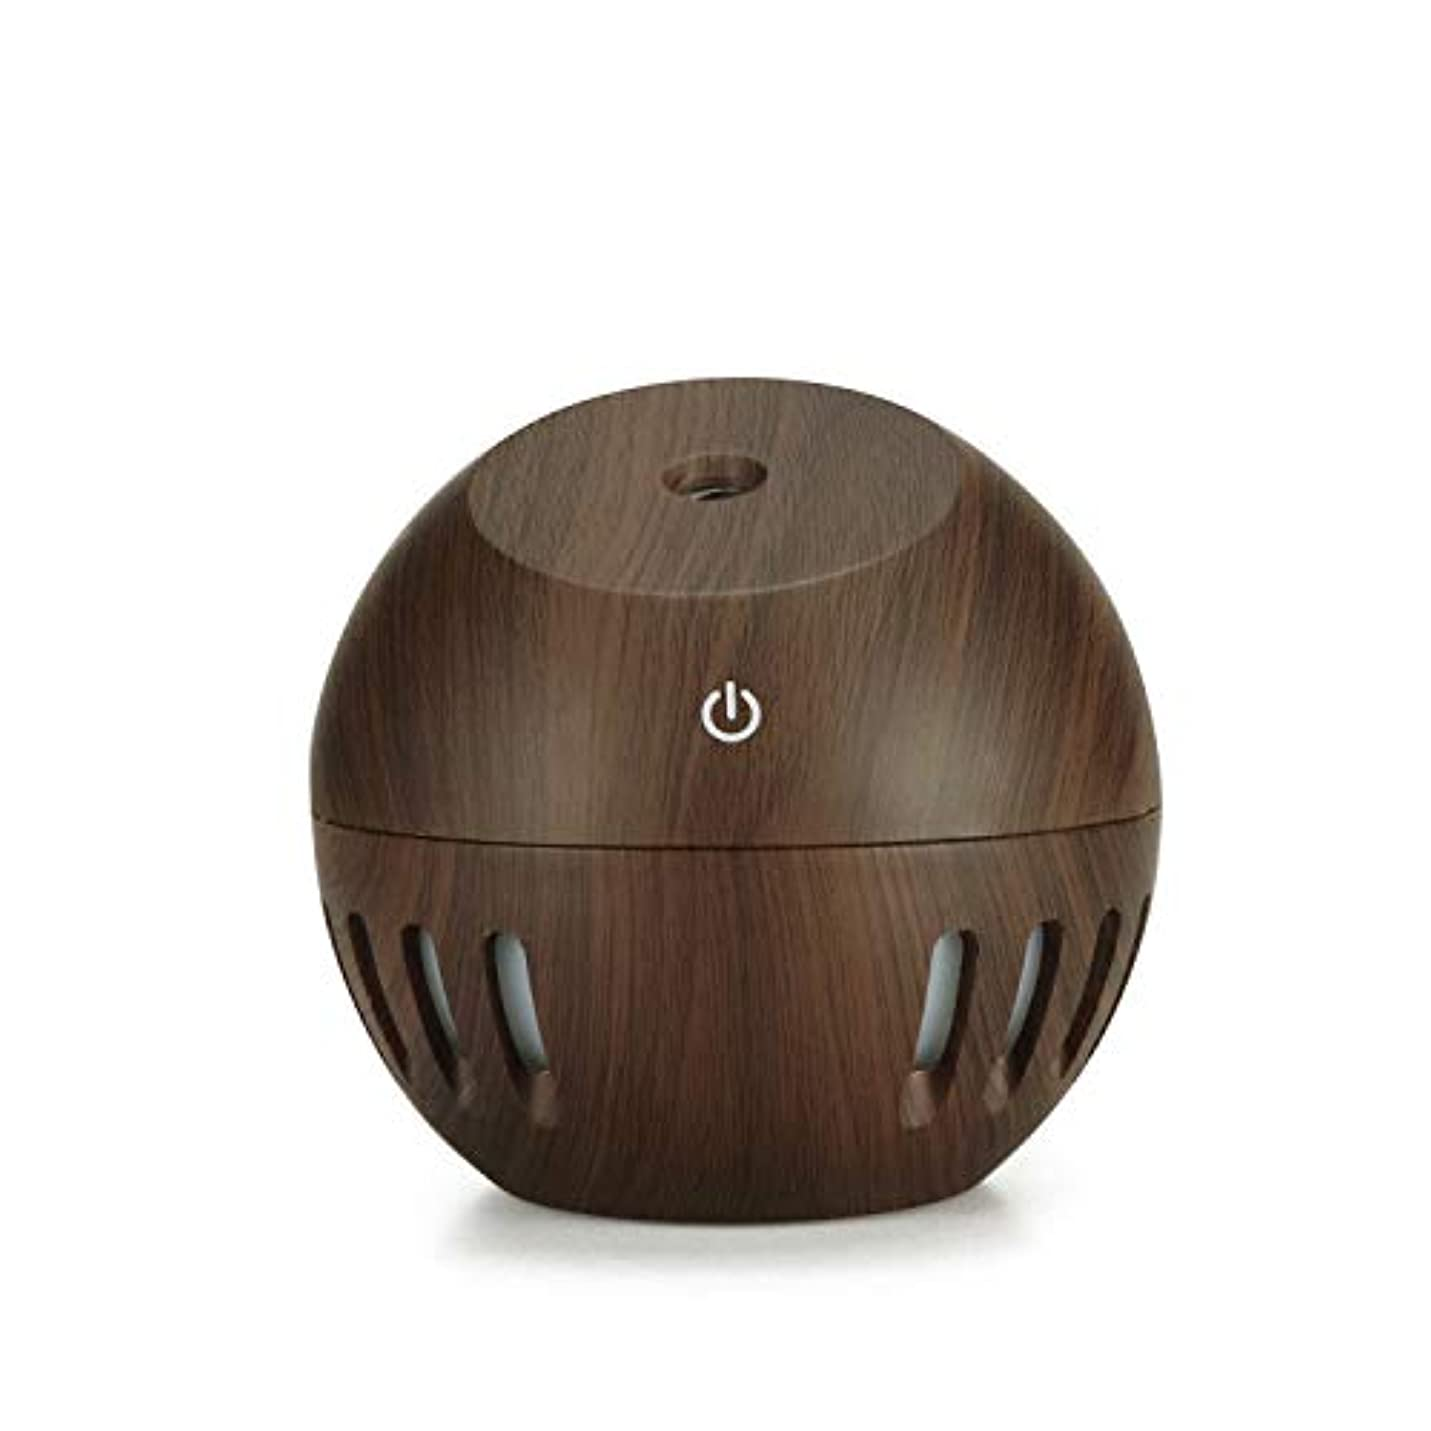 移住する再現する本質的ではない130ml Essential Oils Diffuser Electric Cool Mist Aroma Diffuser For Home, Yoga, Bedroom